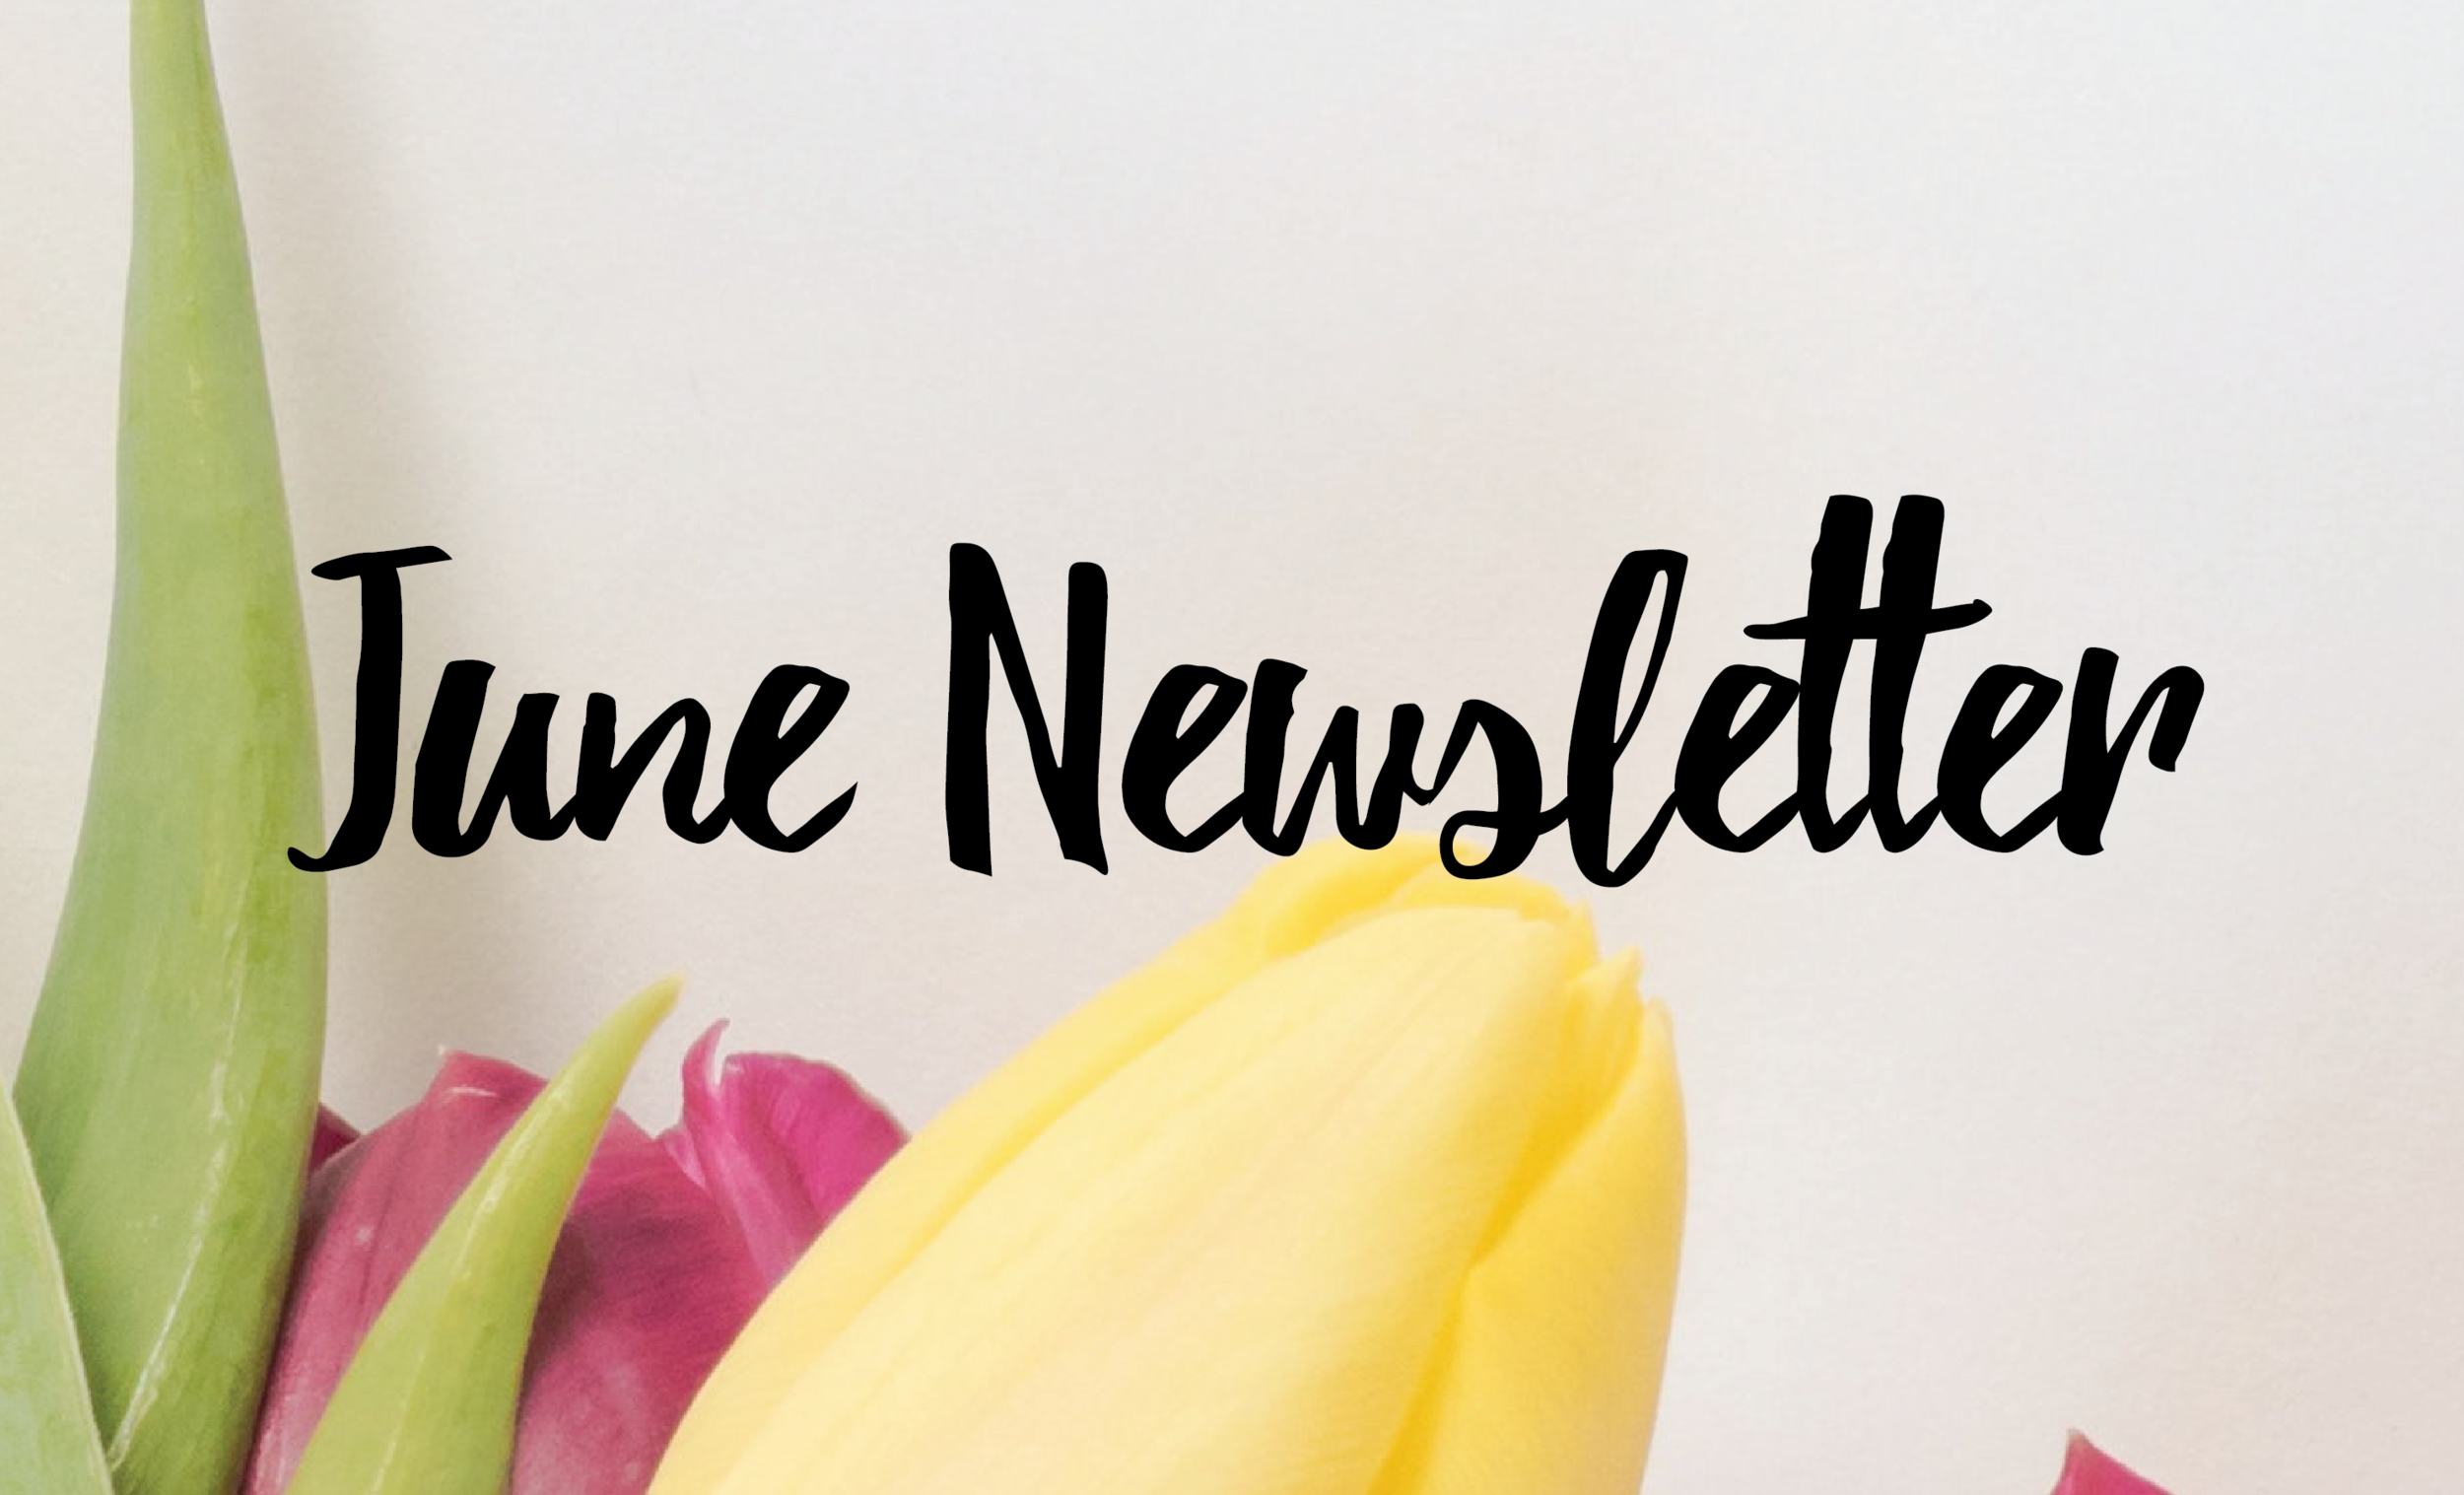 june newsletter, academic alliance in dermatology, tampa dermatology, tampa dermatologist, dermatologist in tampa